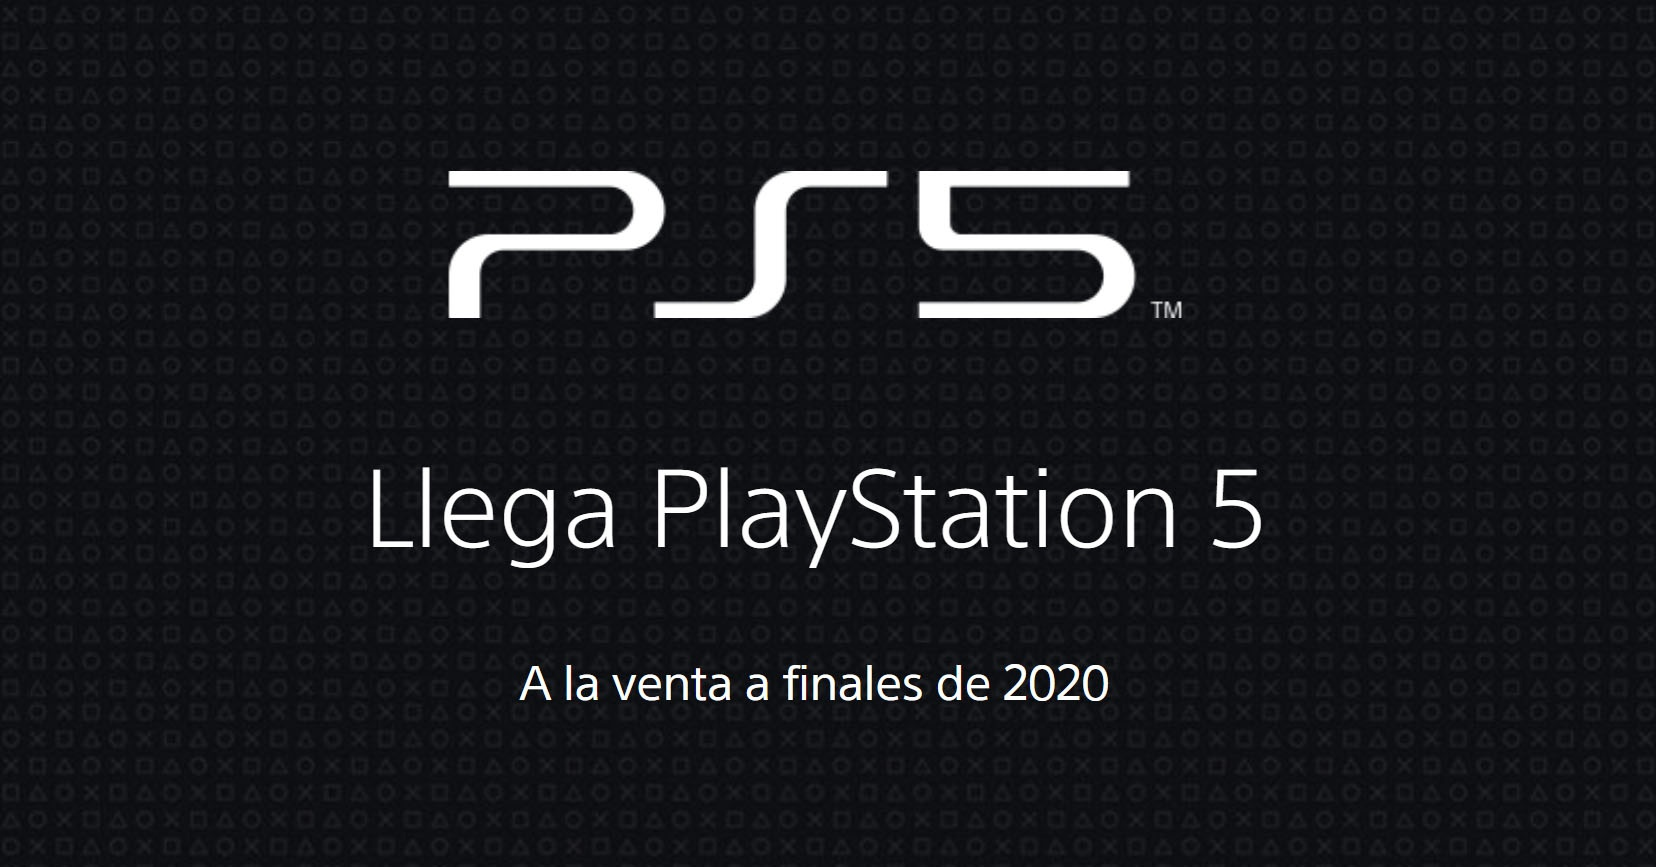 PS5 official website